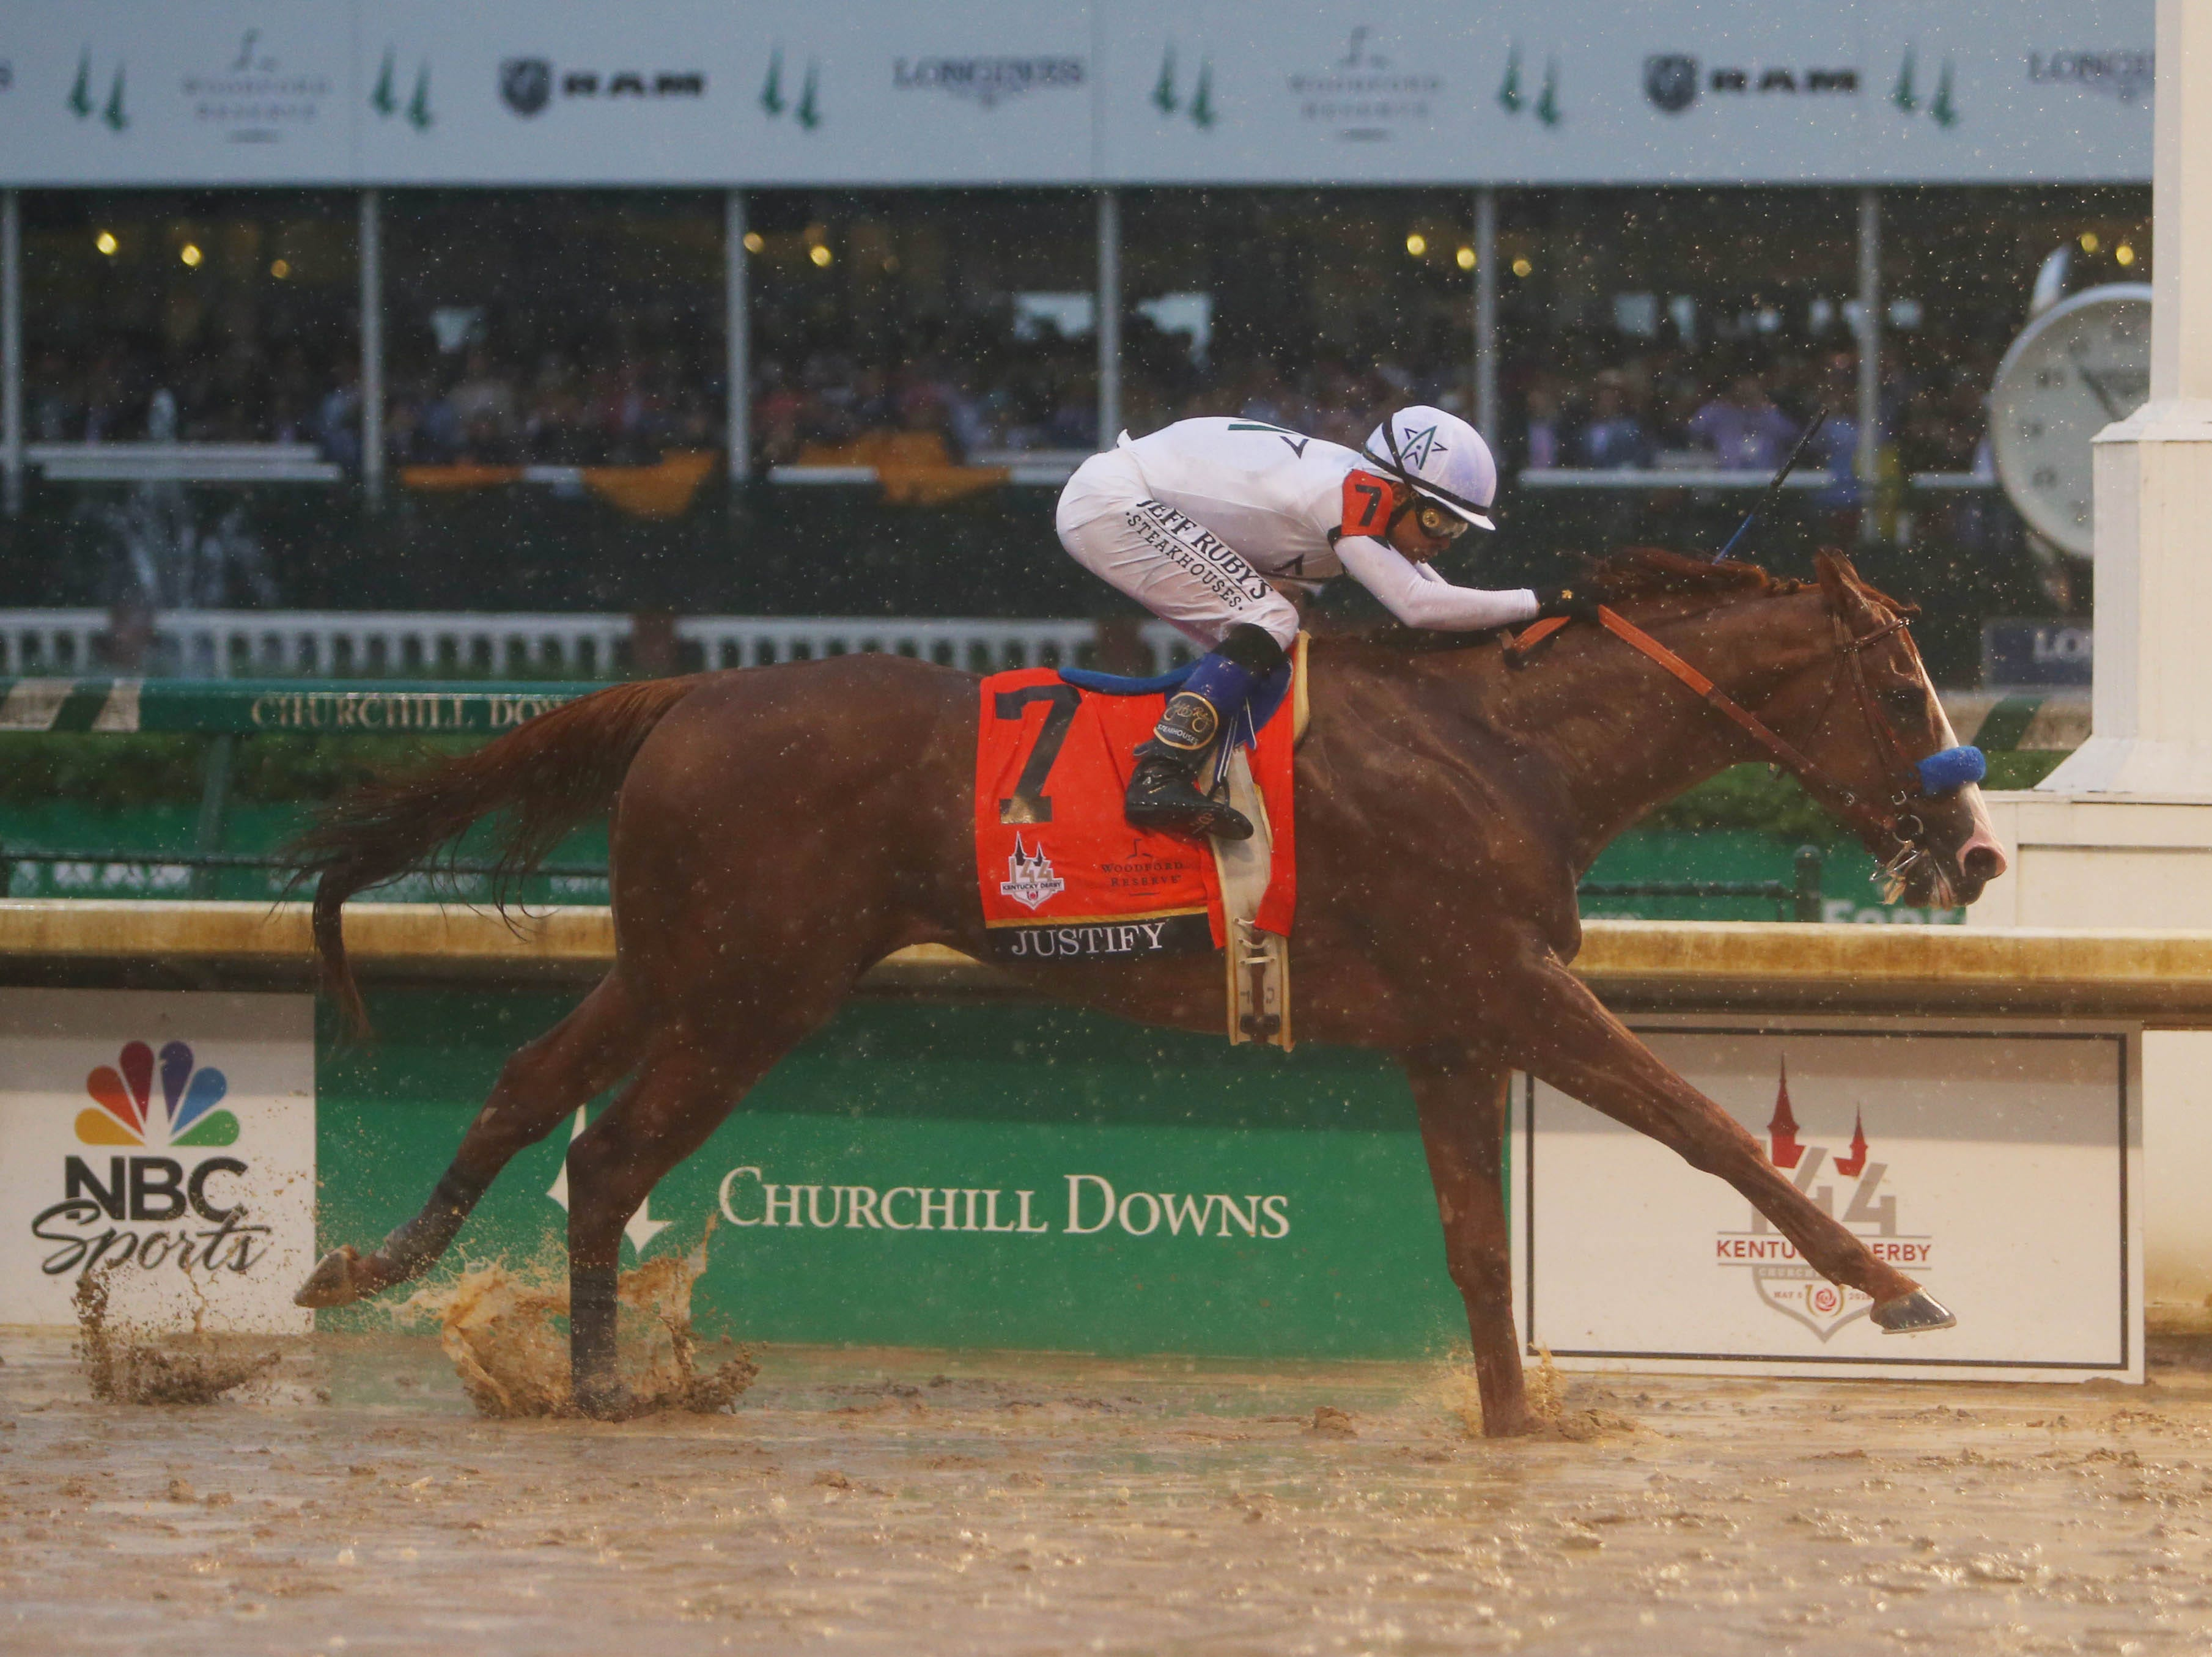 May 5: Mike Smith aboard Justify crosses the finish line to win the 144th Kentucky Derby at Churchill Downs.